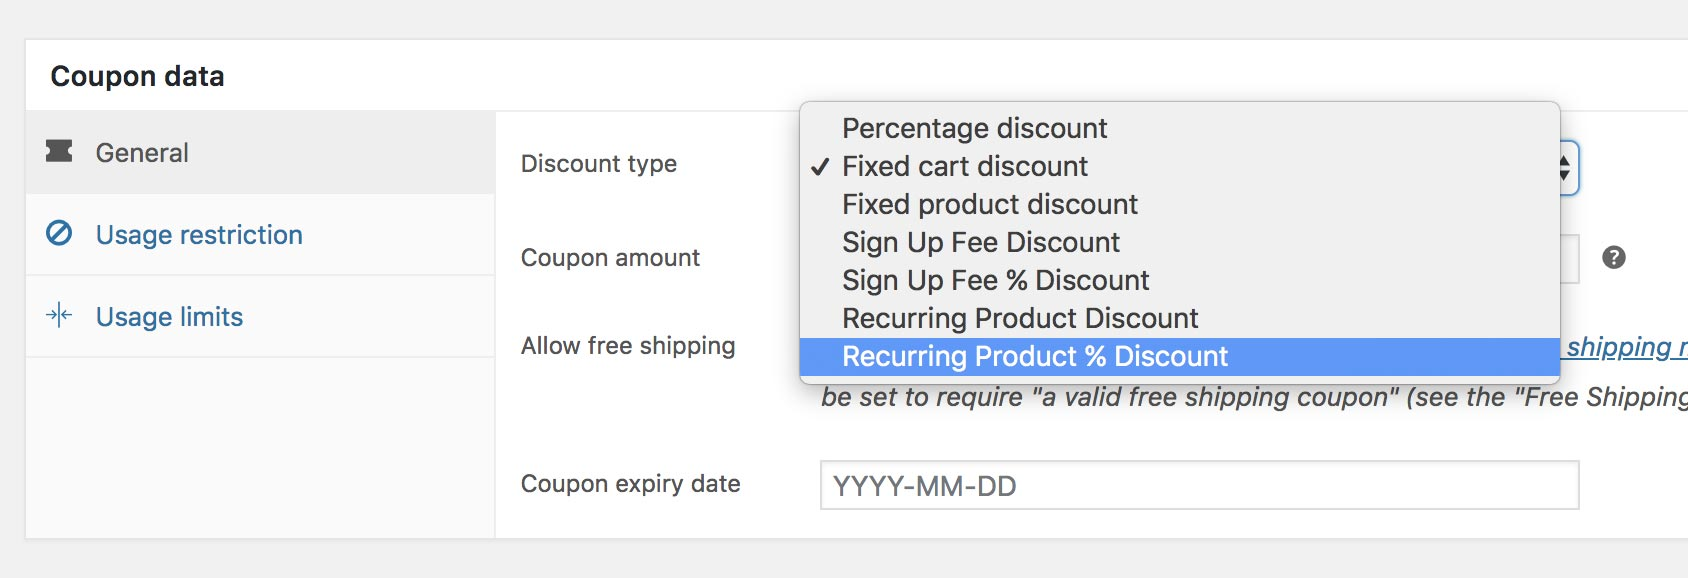 You can create a discount coupon based on a subscription